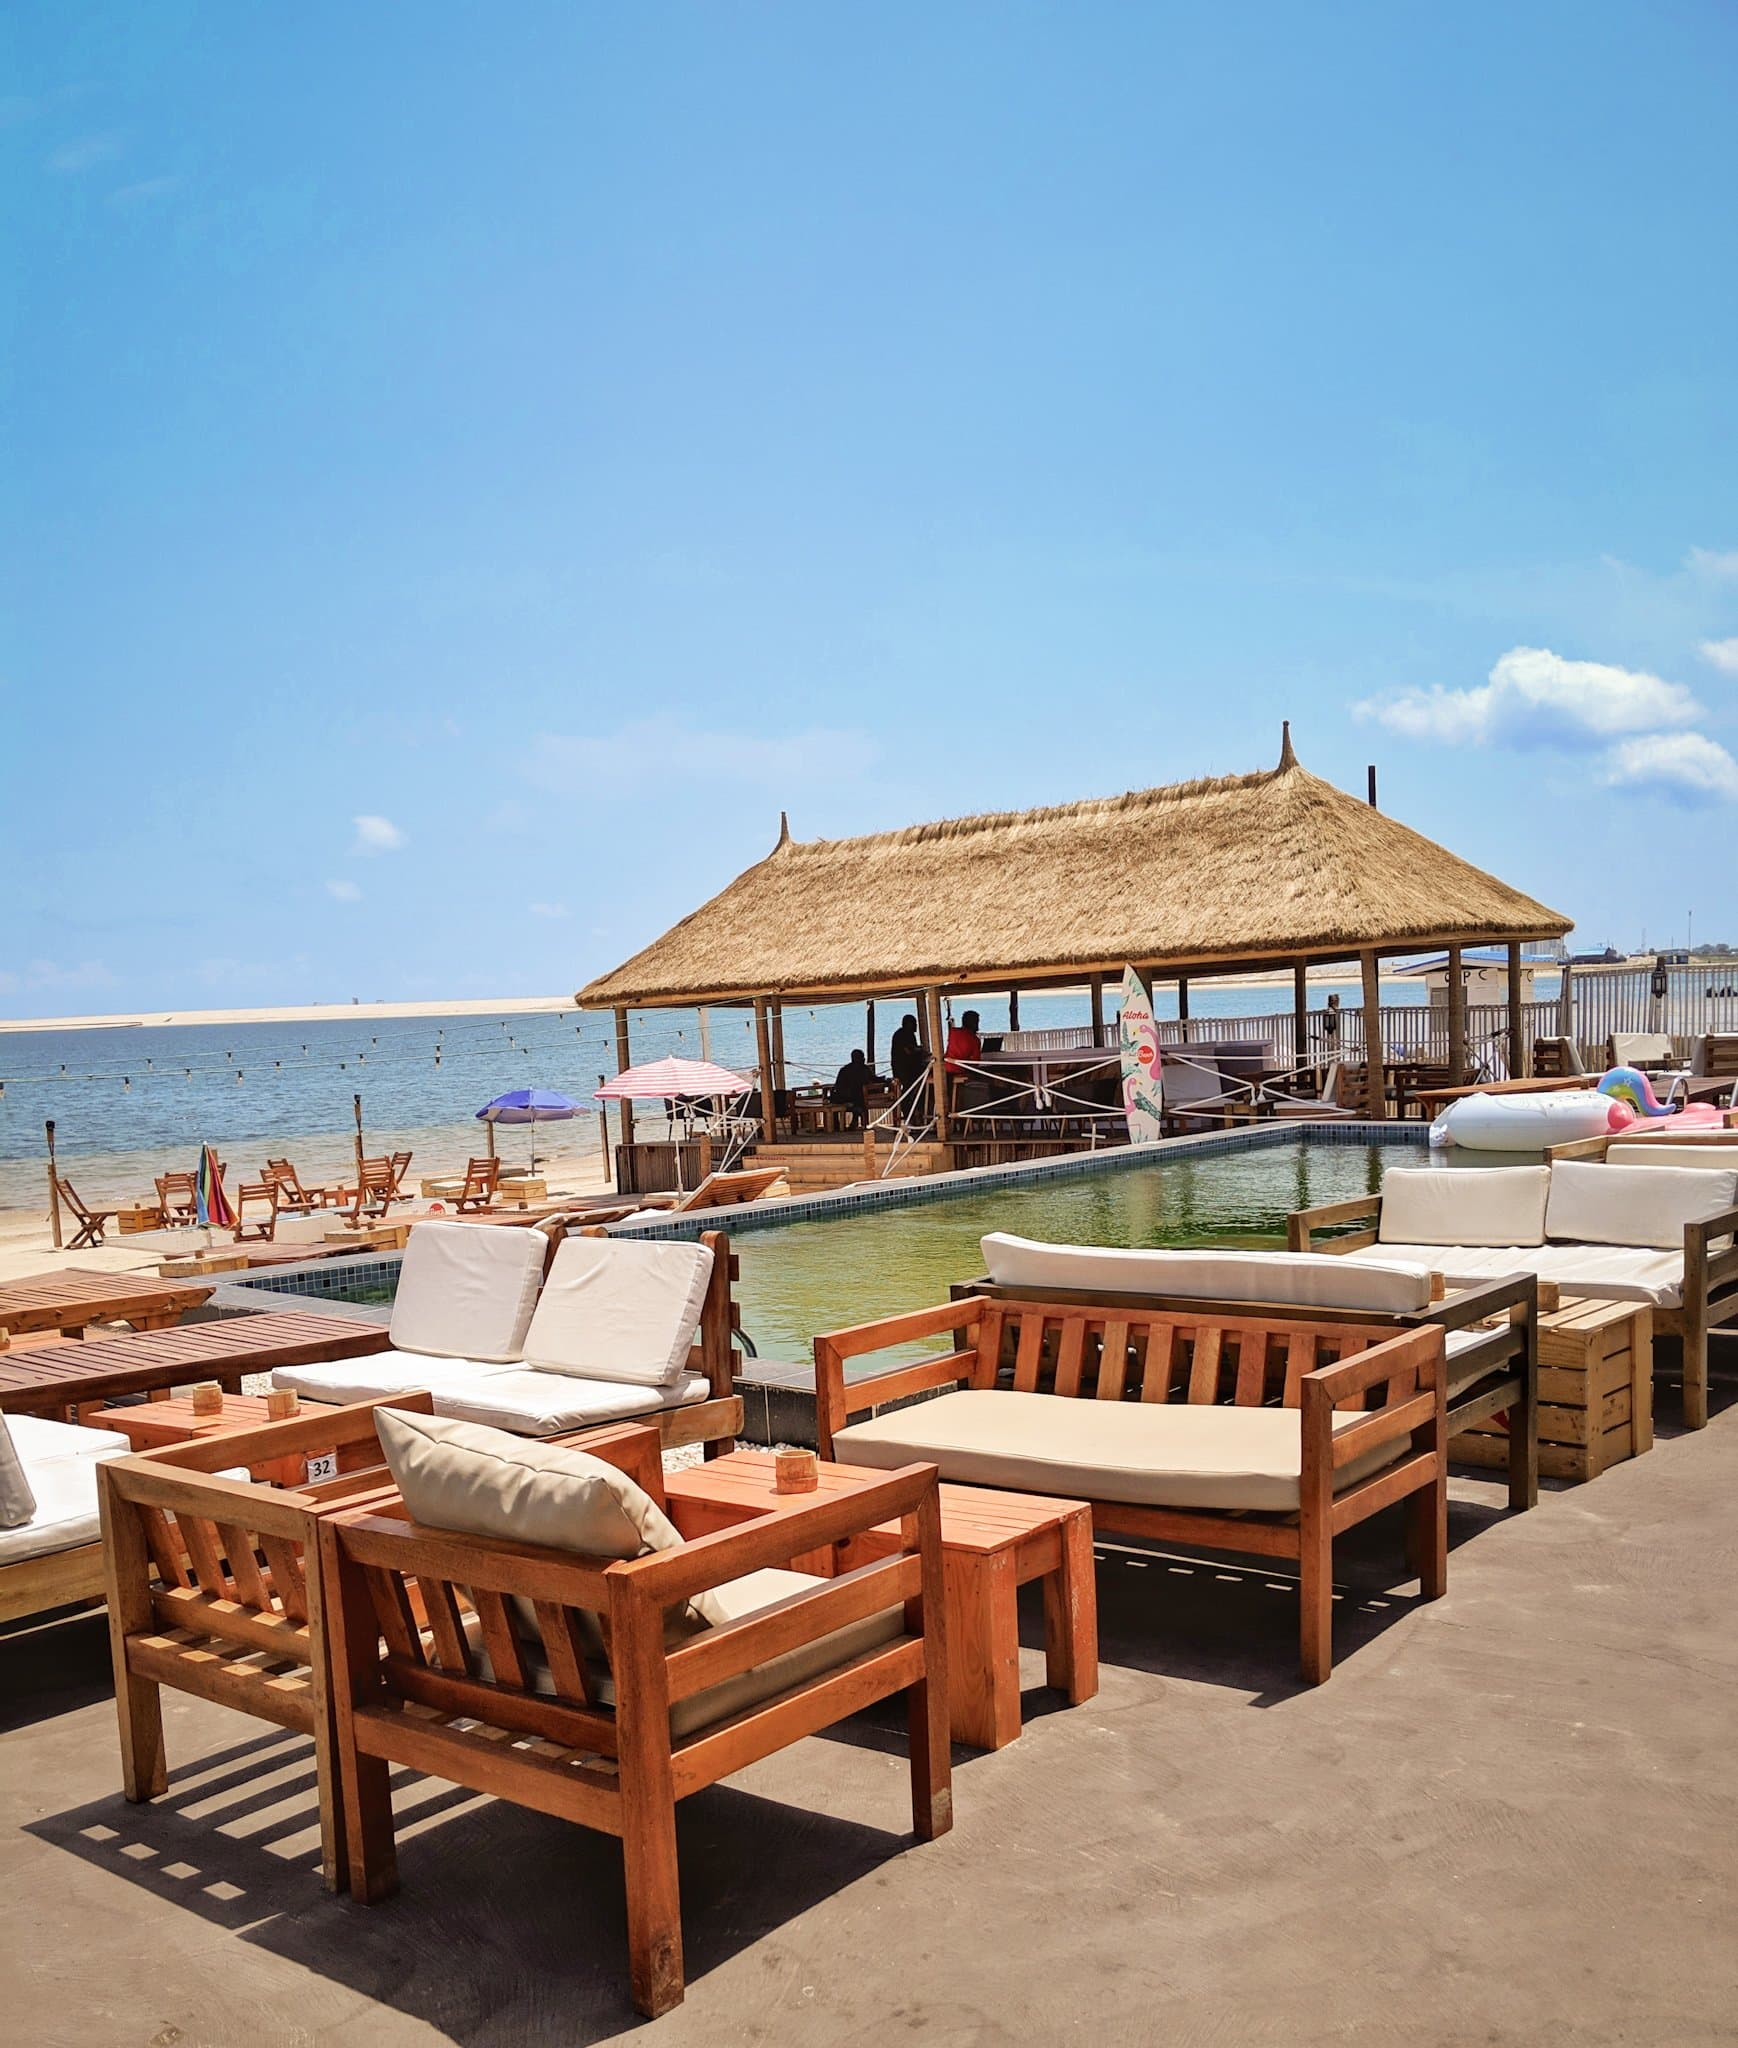 Moist beach club and restaurant review – All you need to know and more.